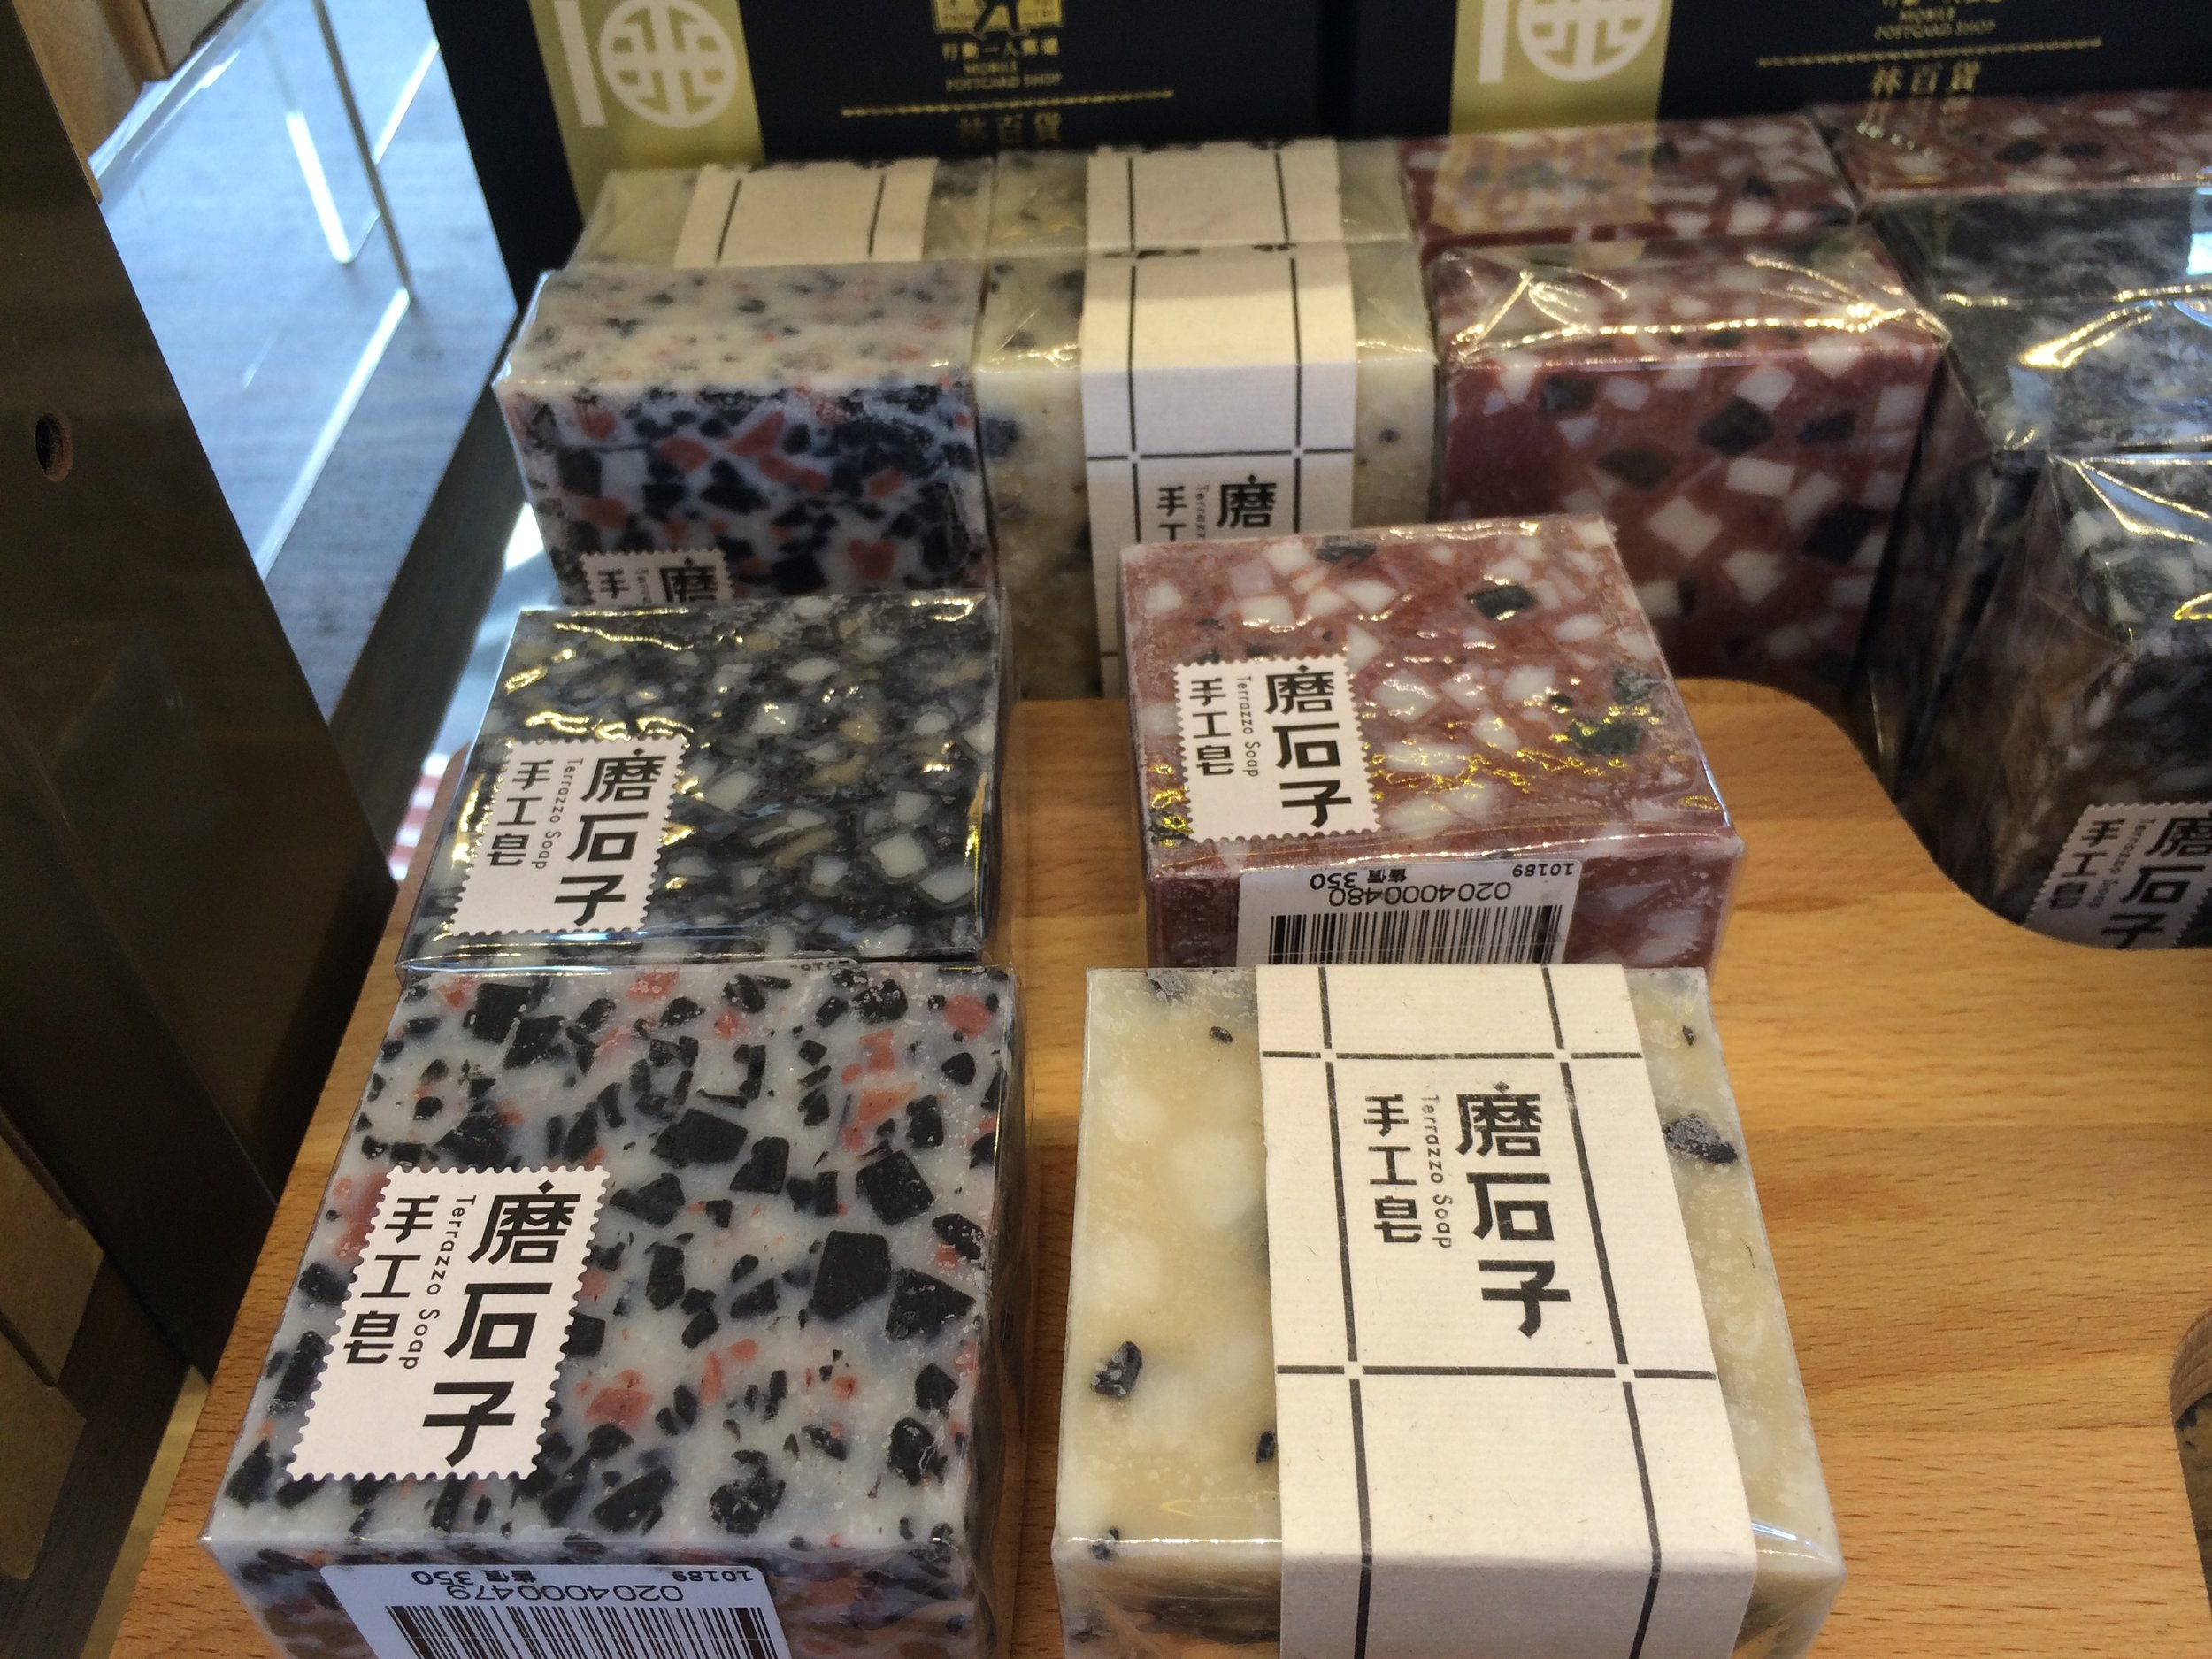 Soap made to resemble speckled concrete floors.